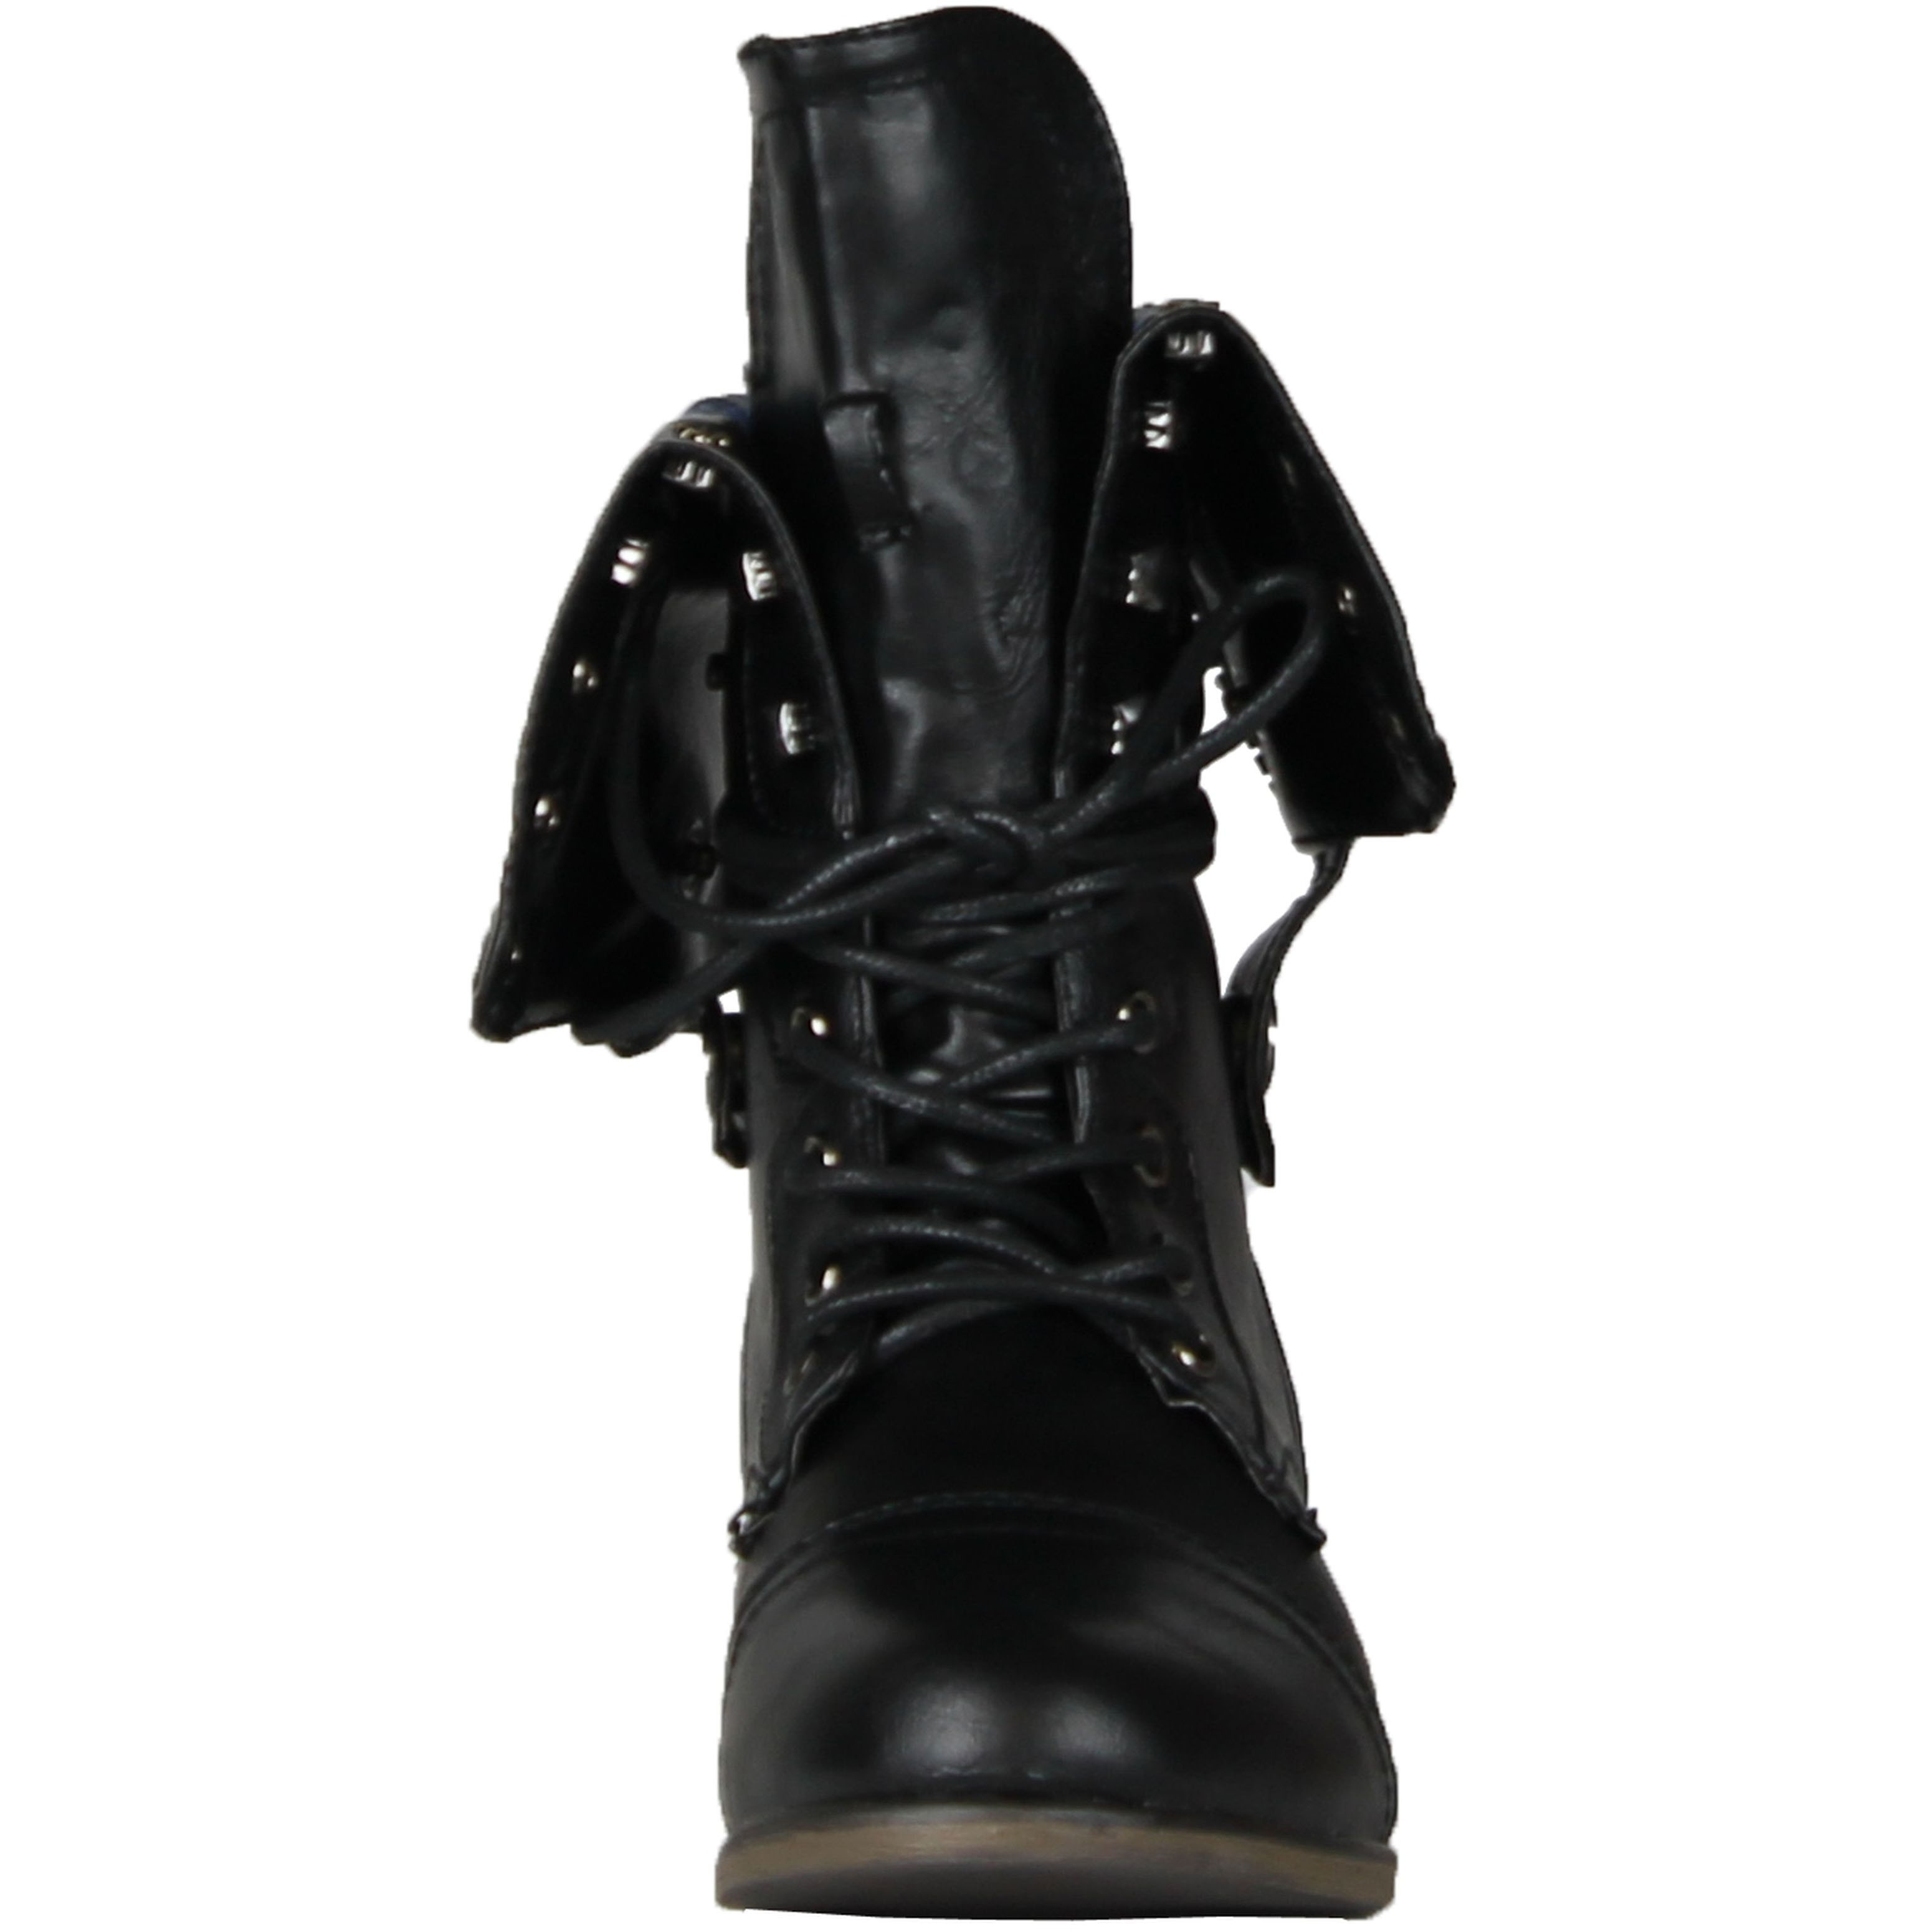 Details about  /DbDk Women/'s Star-8 Round toe Adjustable Foldover Cuff Combat Booties